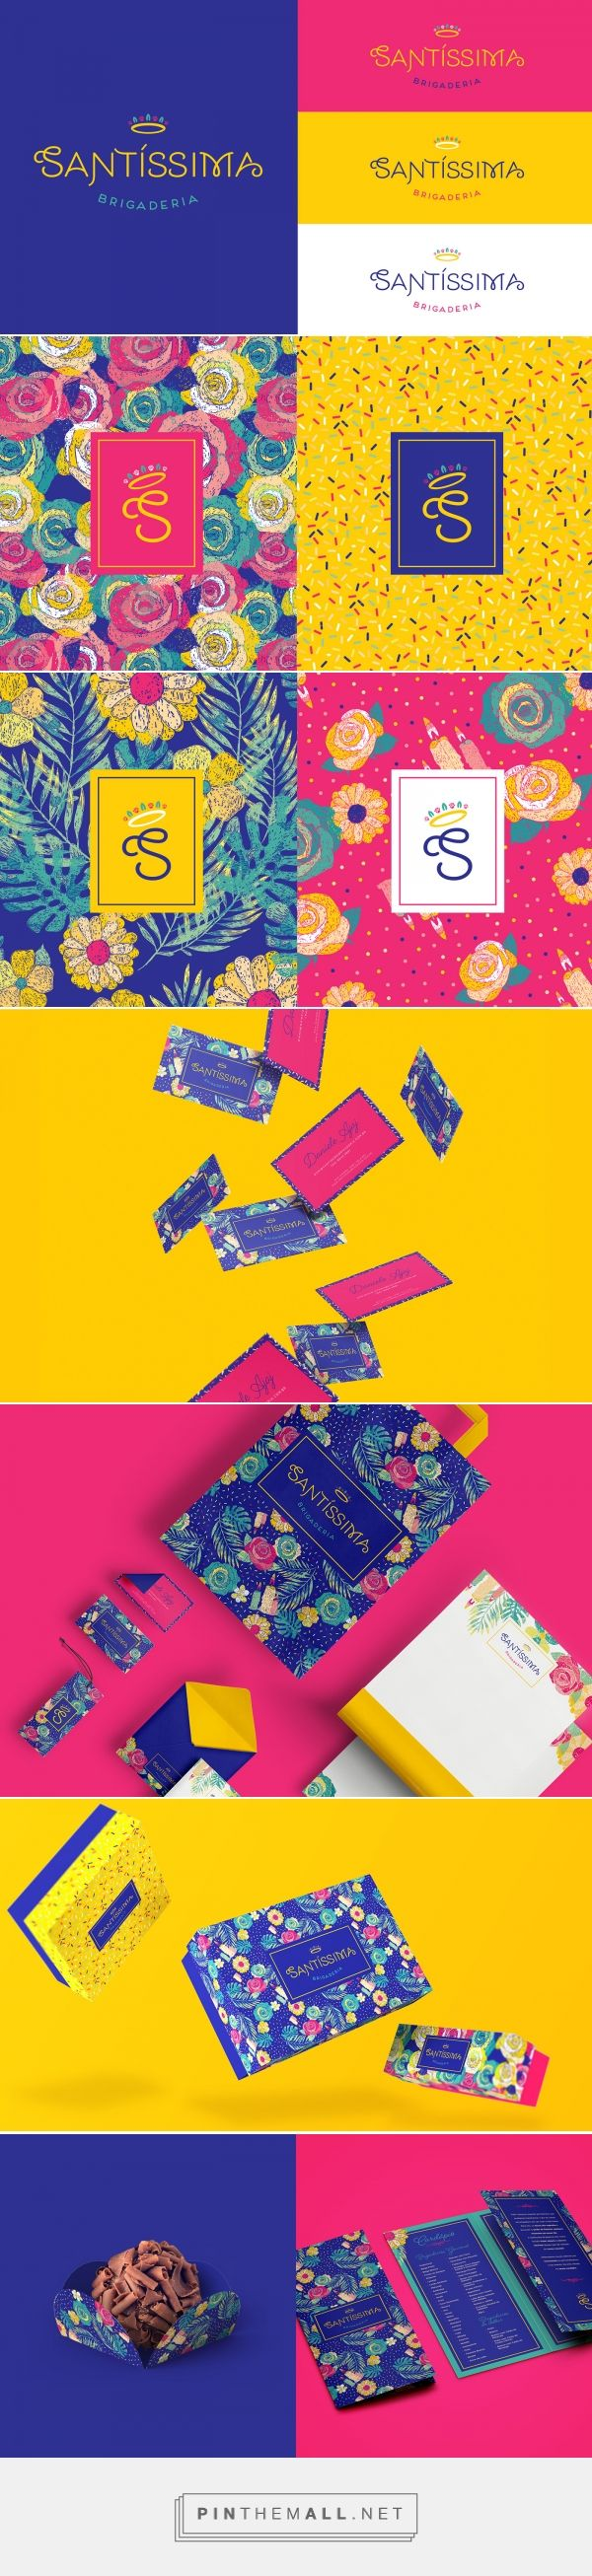 Colorful packaging for Santíssima Brigaderia on Behance curated by Packaging Diva PD. Brigadeiro is one of the most popular candies in Brazil, having condensed milk, butter and chocolate powder as a base for many flavors.